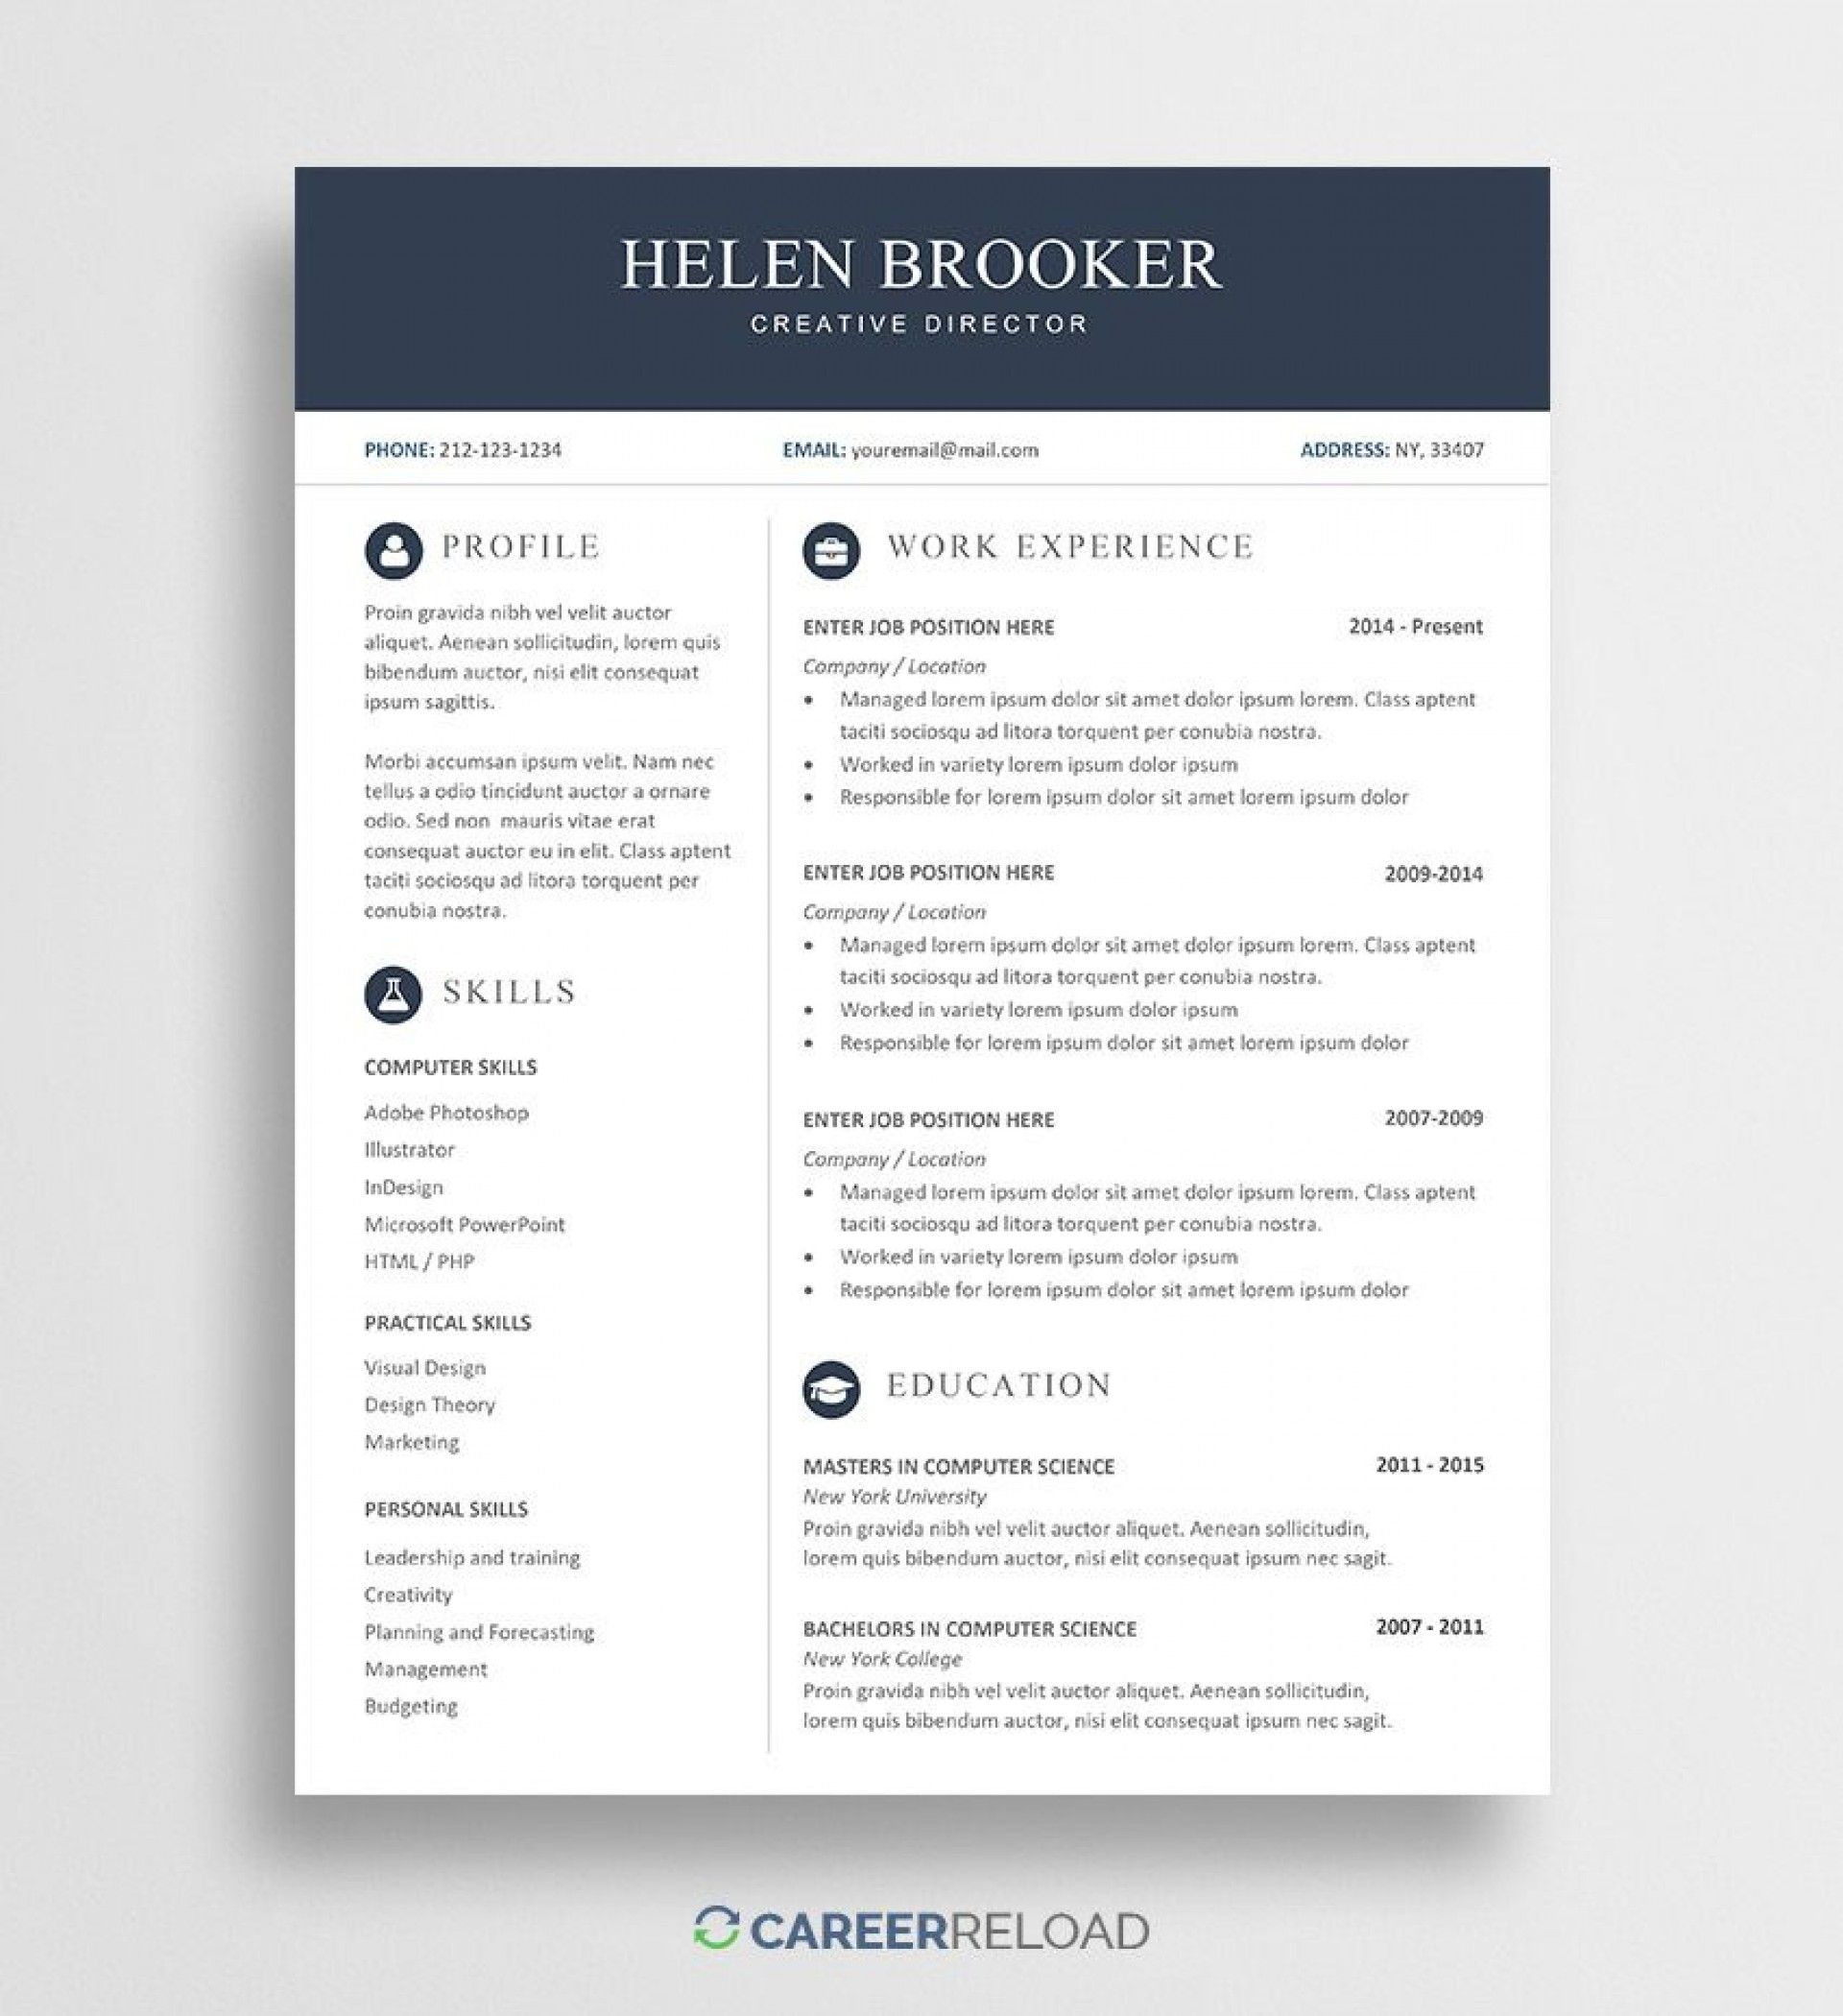 004 Simple Resume Template Download Word Image  Cv Free 2018 2007 Document For Fresher1920